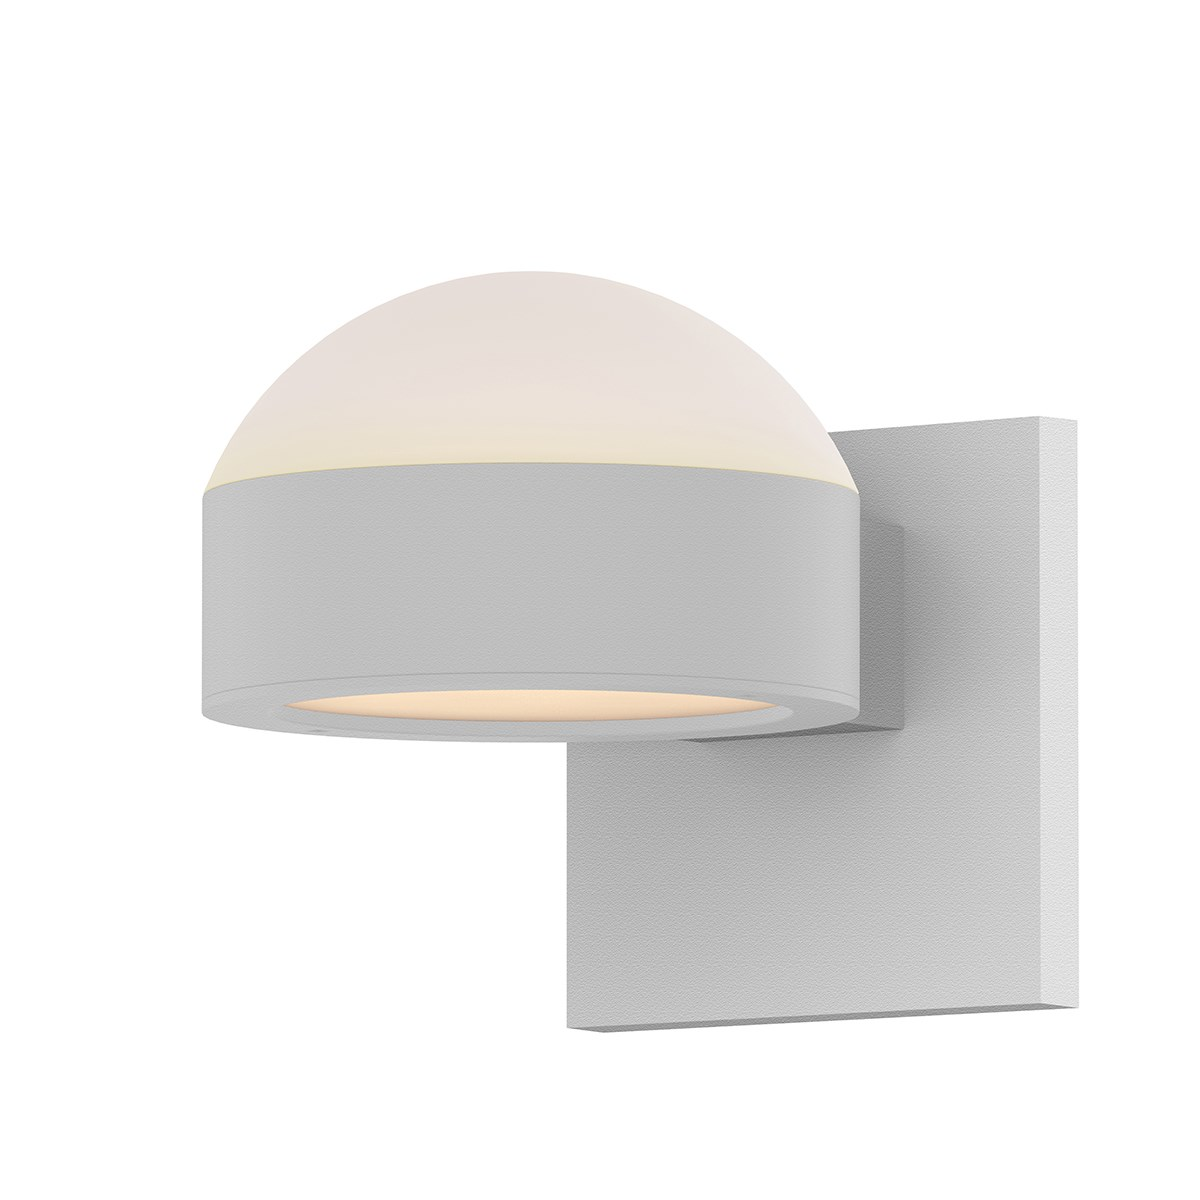 Textured White Finish Domed Frosted White Polycarbonate Top Shade Flat White  Optical Acrylic Bottom Shade